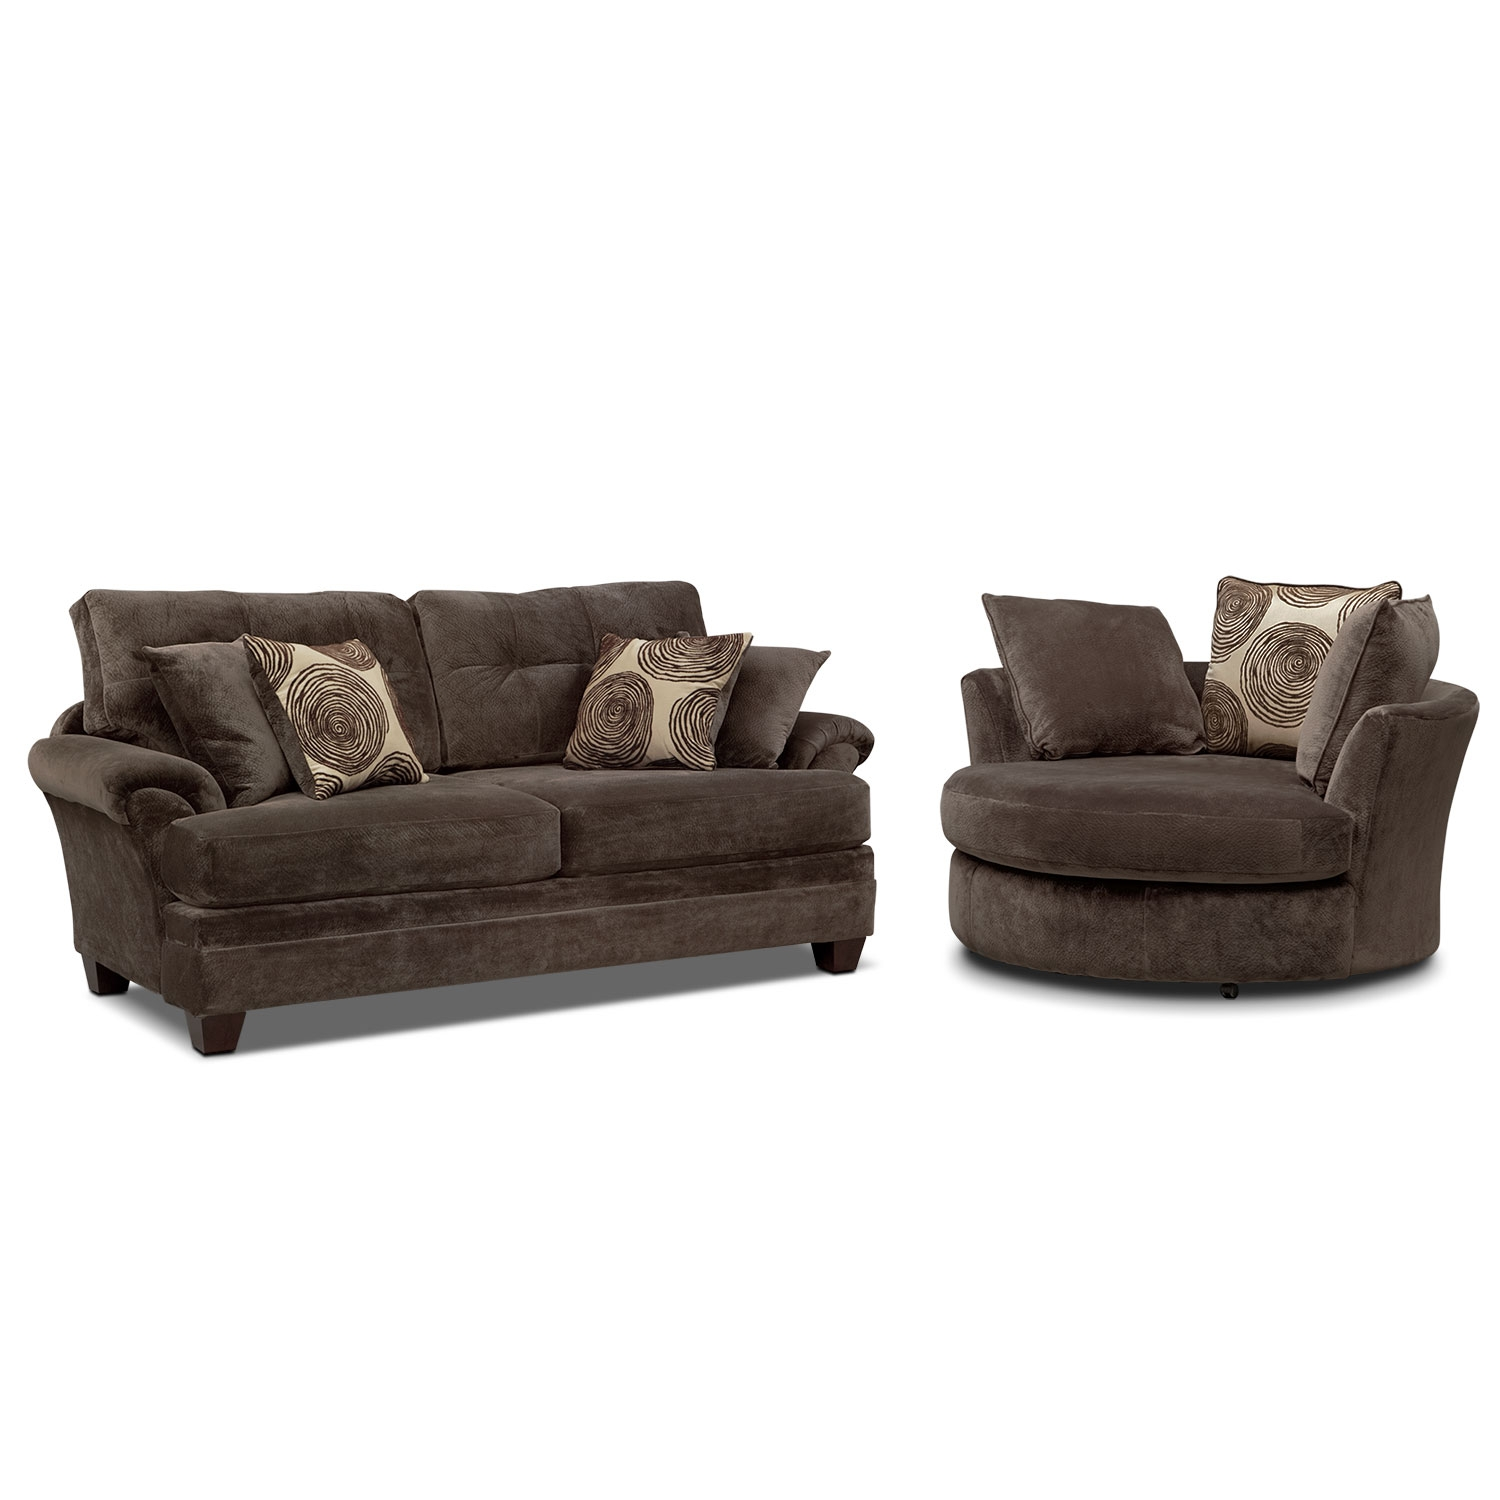 Cordelle Sofa And Swivel Chair Set Chocolate Value City Furniture Inside Sofa With Swivel Chair (Image 4 of 15)